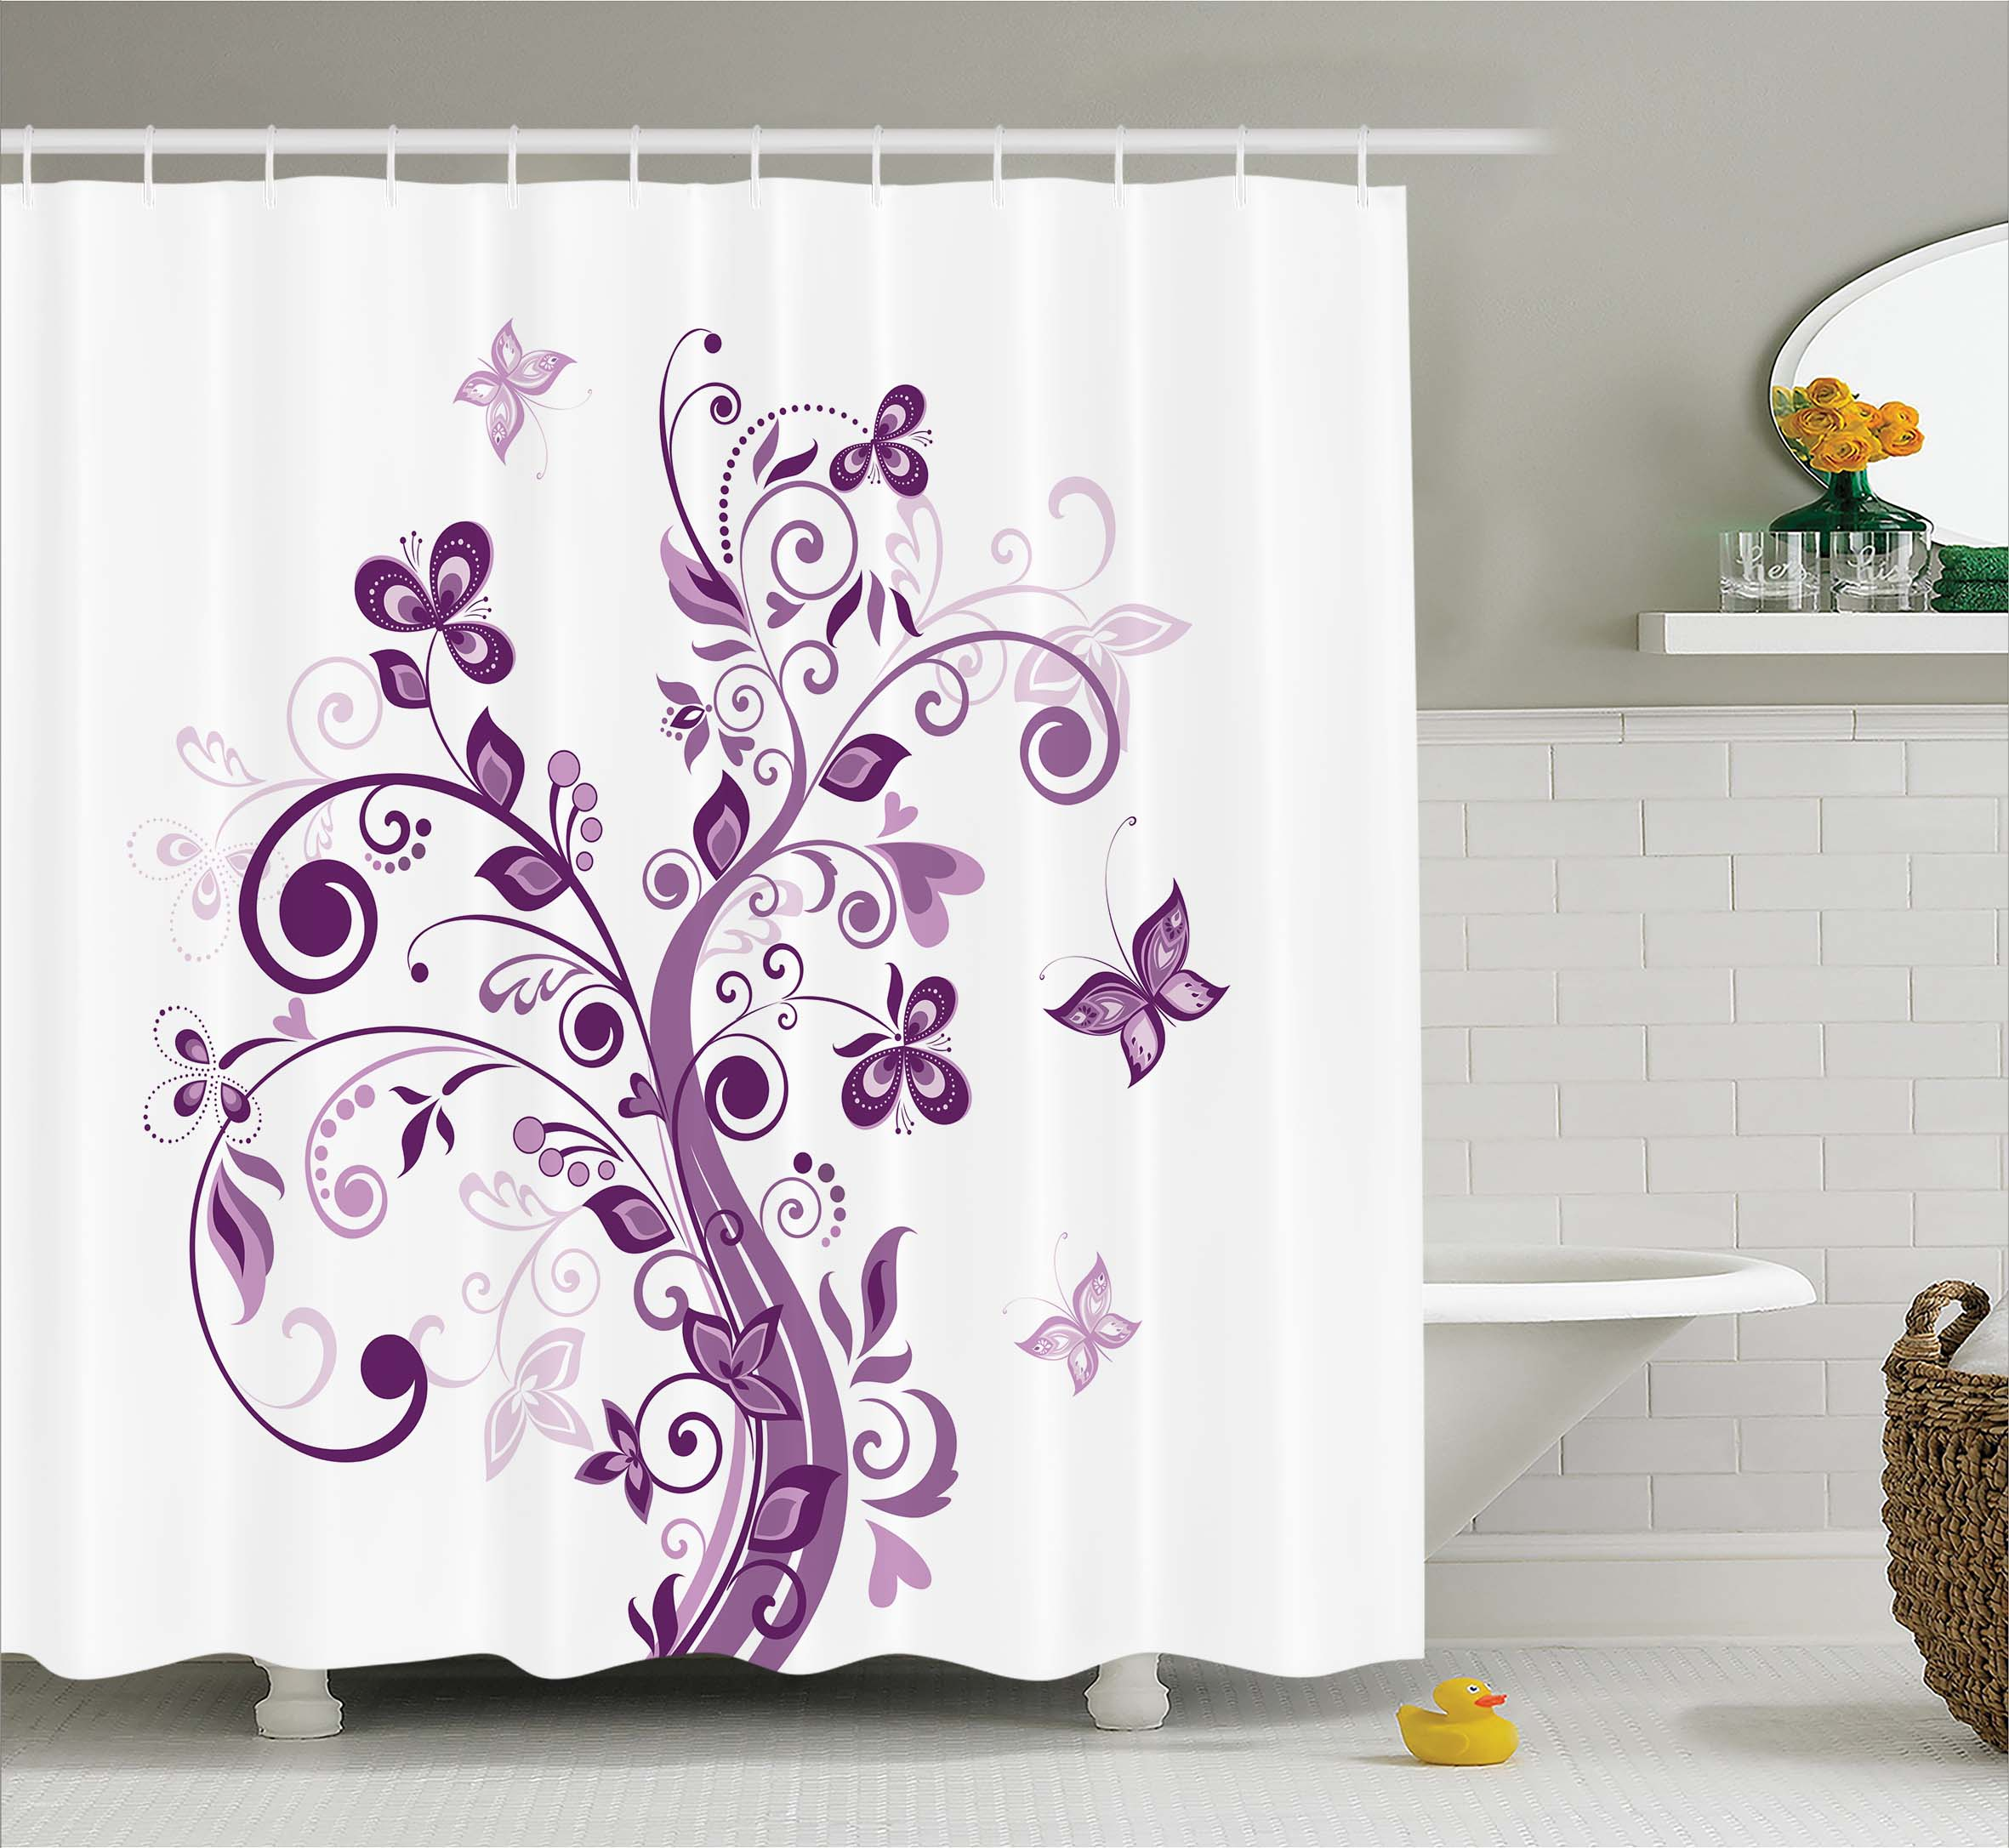 Mauve Decor Shower Curtain, Embellish Tree With Swirled Branches And  Flowers Leaf Butterfly Bridal Theme